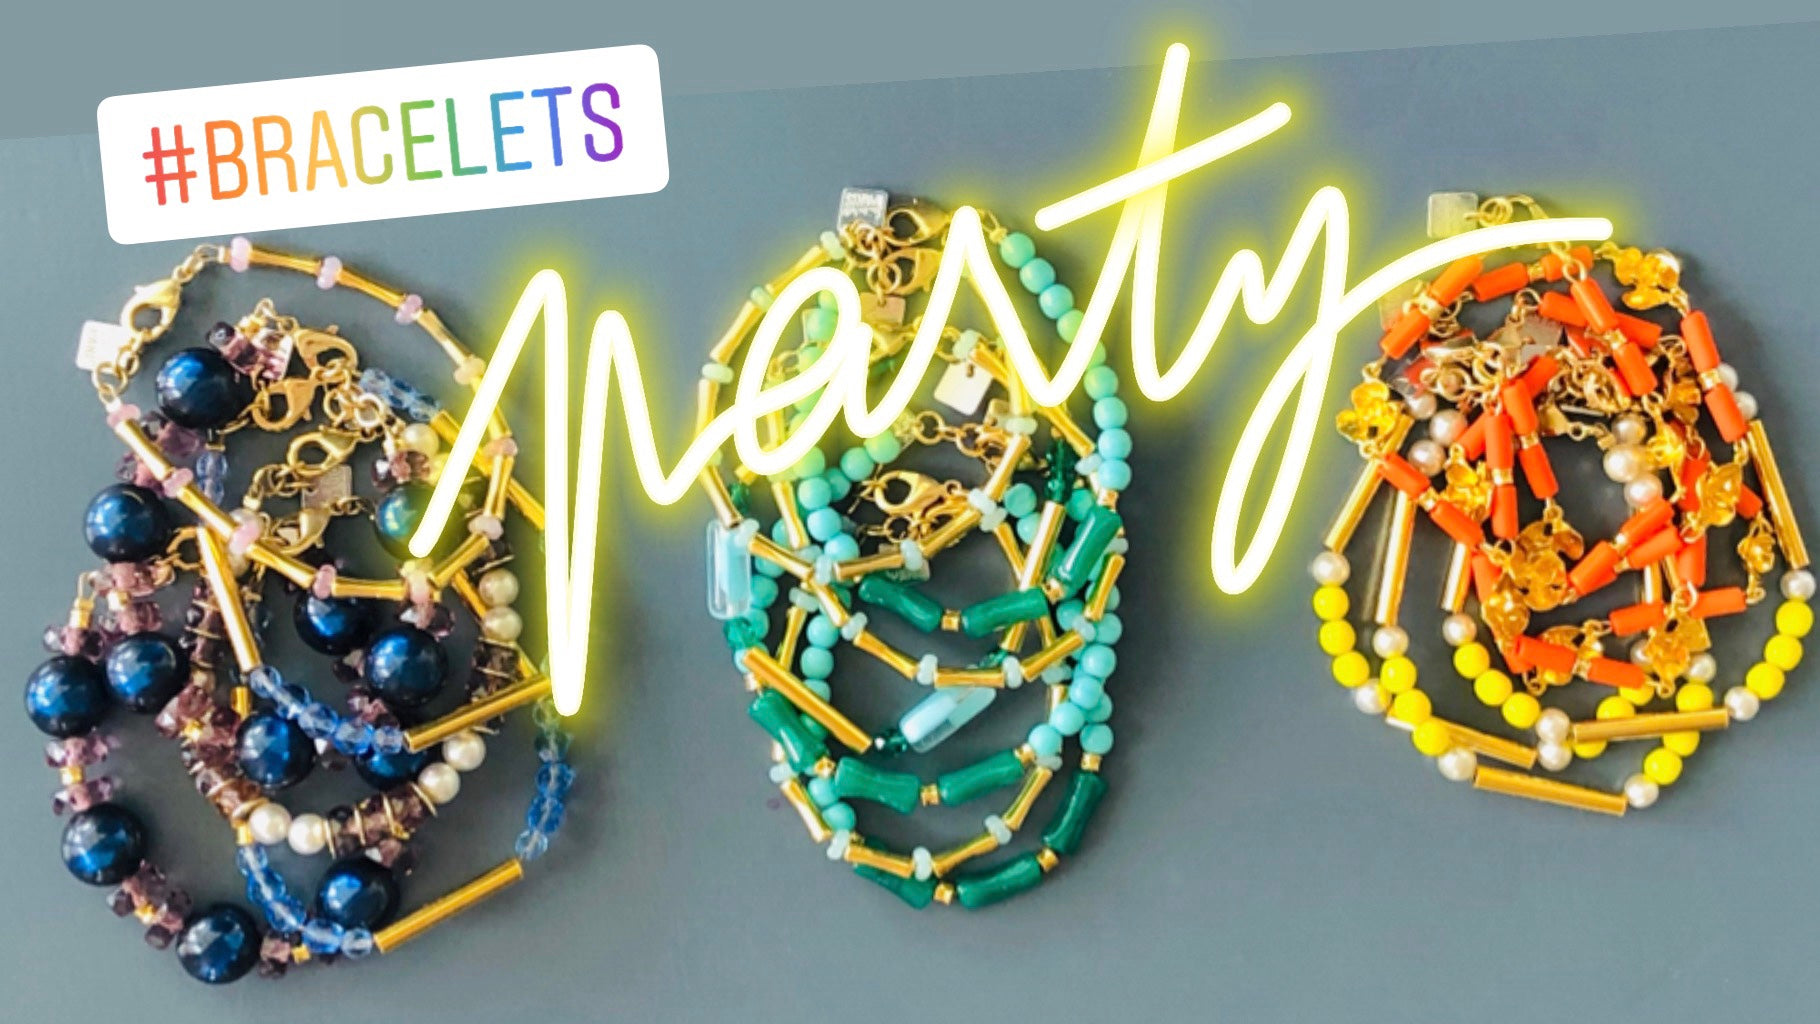 bracelets-collection-LeFaste-surlestoitsdeparis-rainbow-party